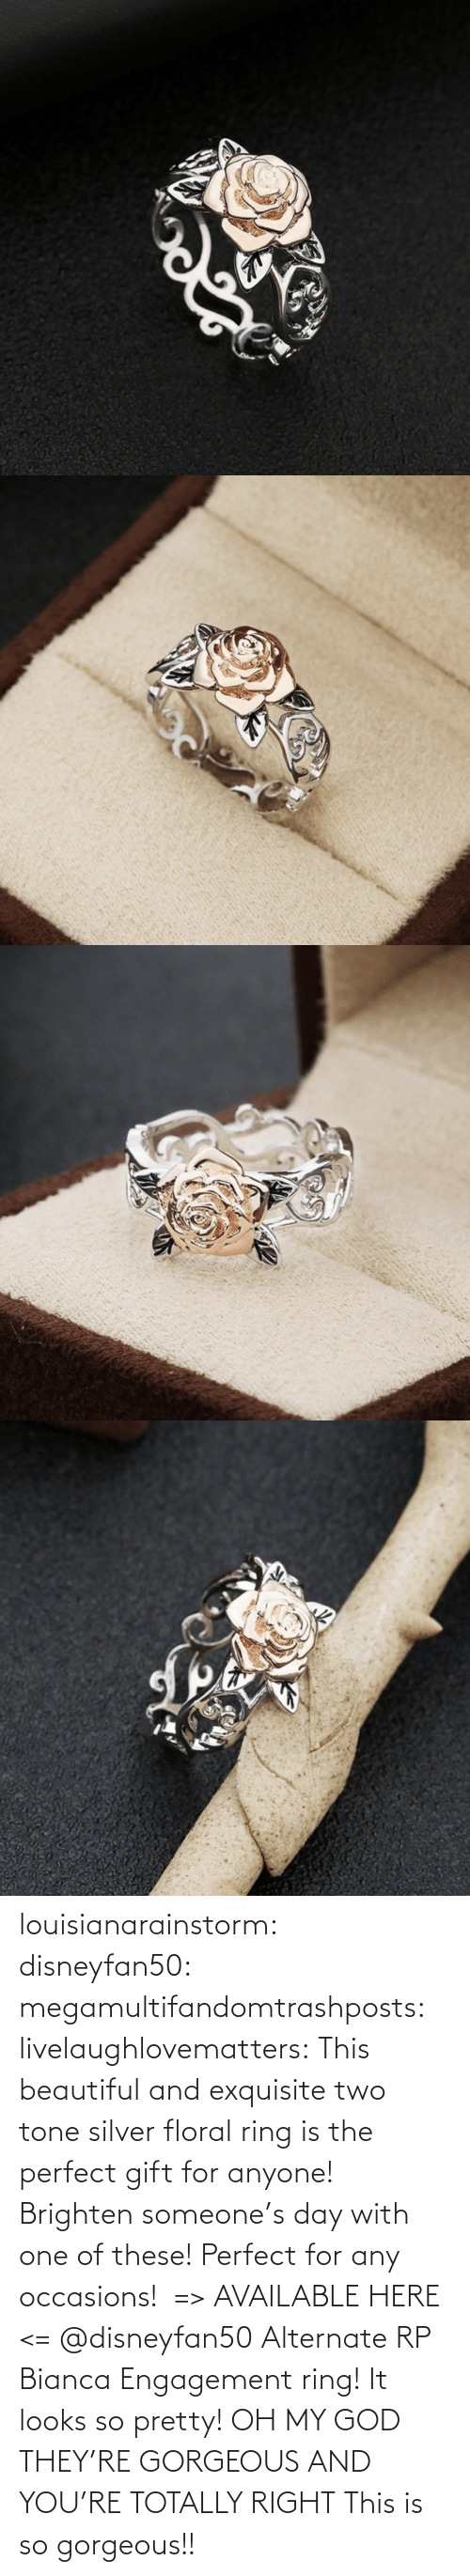 totally: louisianarainstorm: disneyfan50:  megamultifandomtrashposts:  livelaughlovematters:  This beautiful and exquisite two tone silver floral ring is the perfect gift for anyone! Brighten someone's day with one of these! Perfect for any occasions!  => AVAILABLE HERE <=    @disneyfan50 Alternate RP Bianca Engagement ring! It looks so pretty!  OH MY GOD THEY'RE GORGEOUS AND YOU'RE TOTALLY RIGHT    This is so gorgeous!!